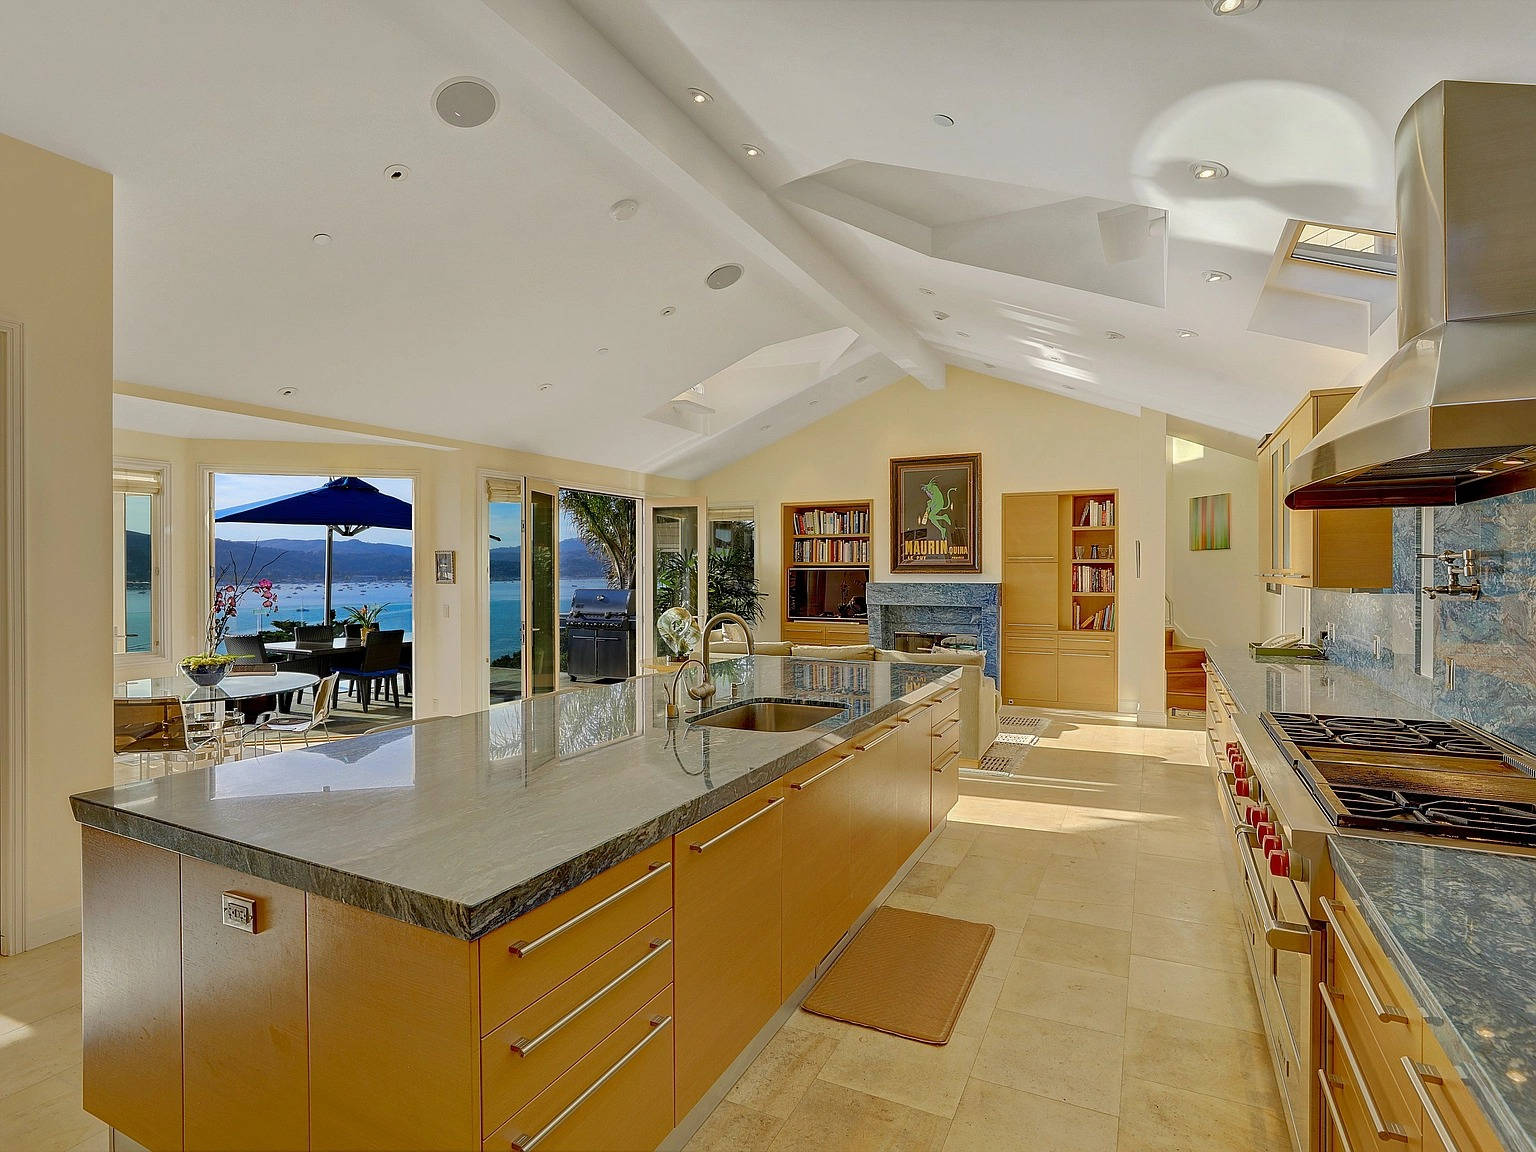 337 Belvedere Ave, Belvedere, CA 94920 - $32,000,000 home for sale, house images, photos and pics gallery